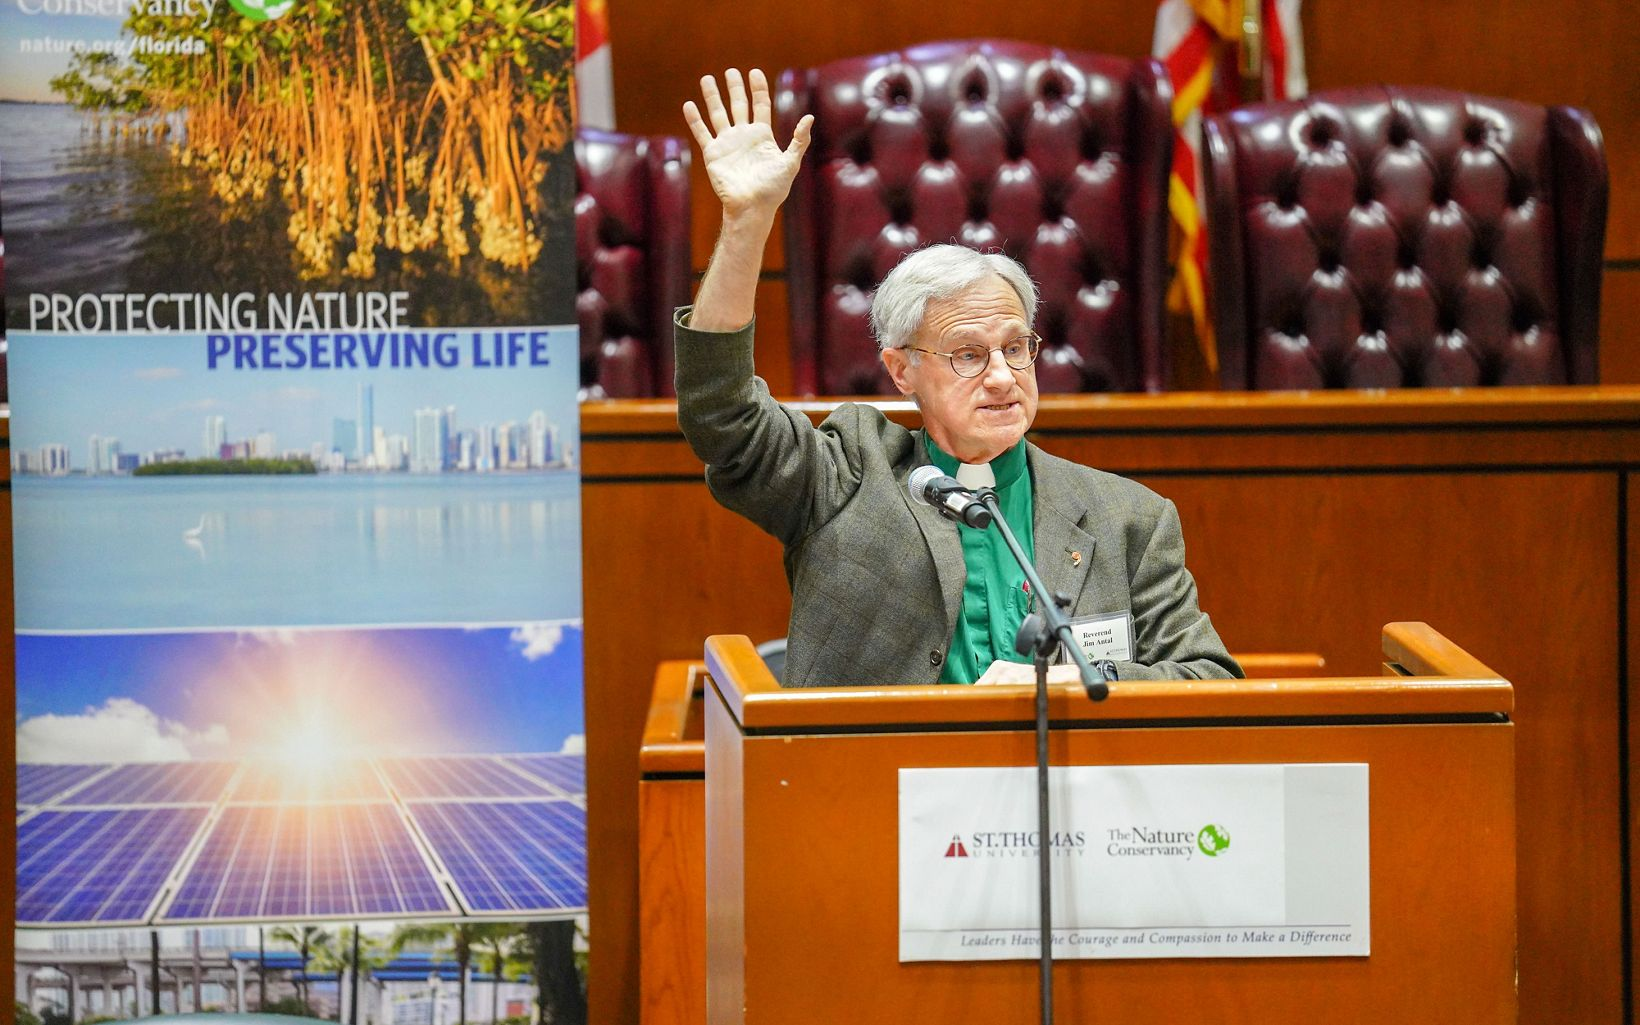 Reverend Dr. Jim Antal standing at a podium speaking with one hand raised in the air.